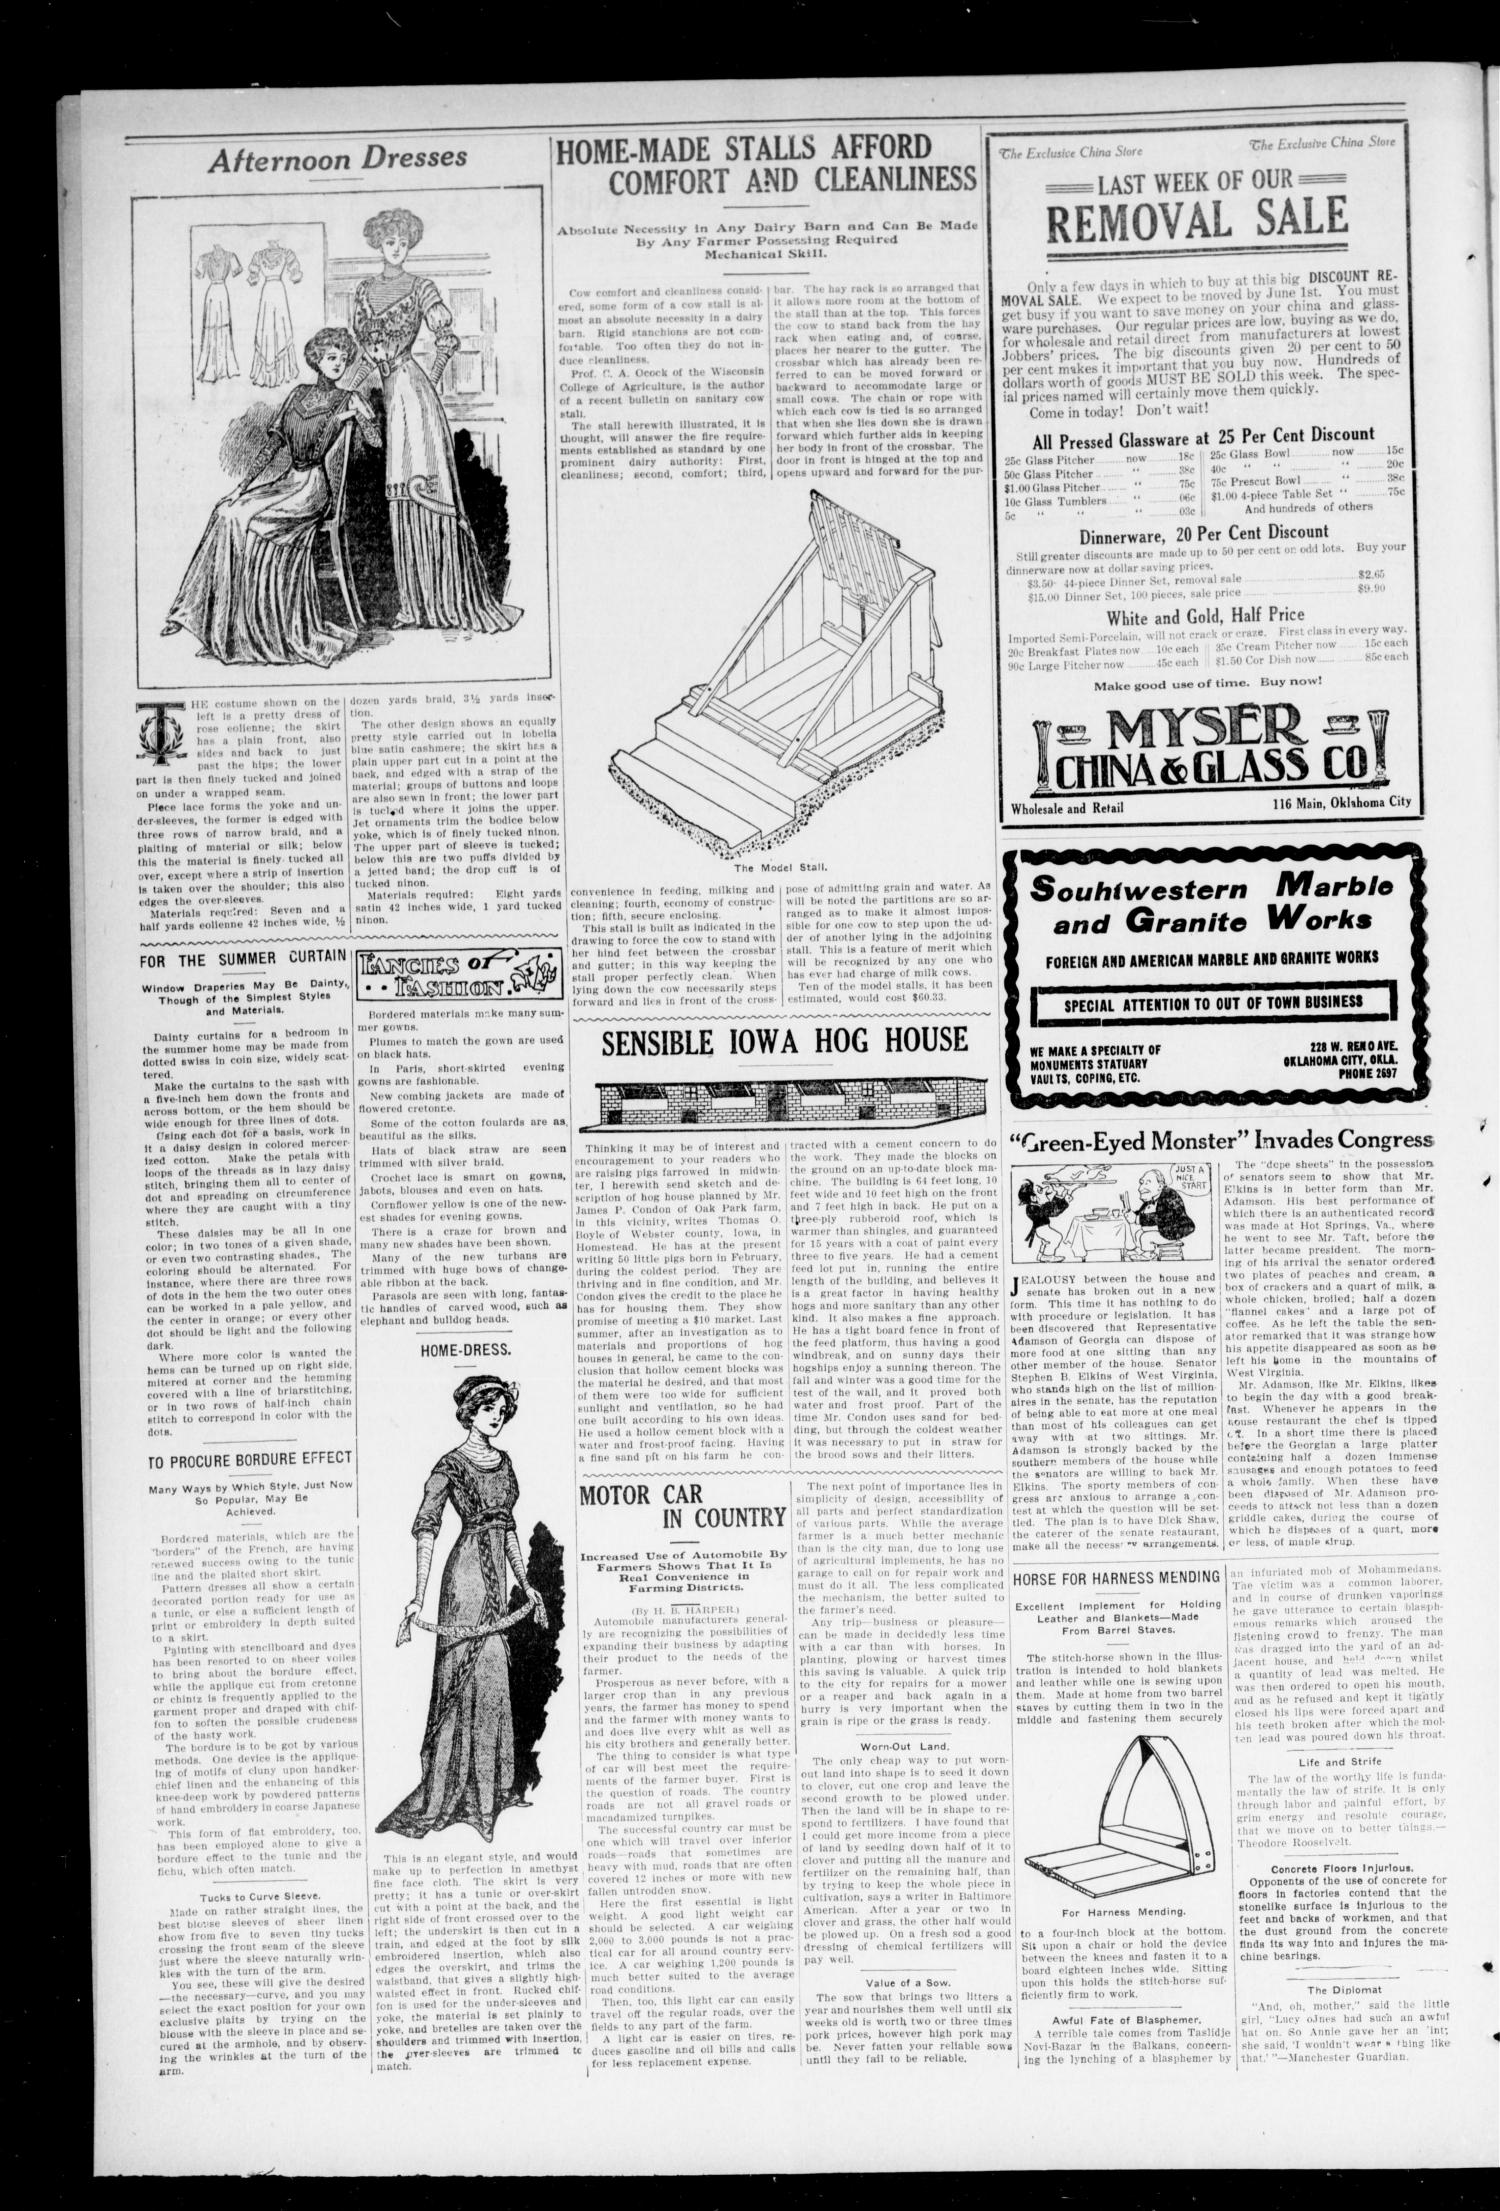 The Moore Messenger. (Moore, Okla.), Vol. 3, No. 3, Ed. 1 Saturday, May 21, 1910                                                                                                      [Sequence #]: 2 of 8